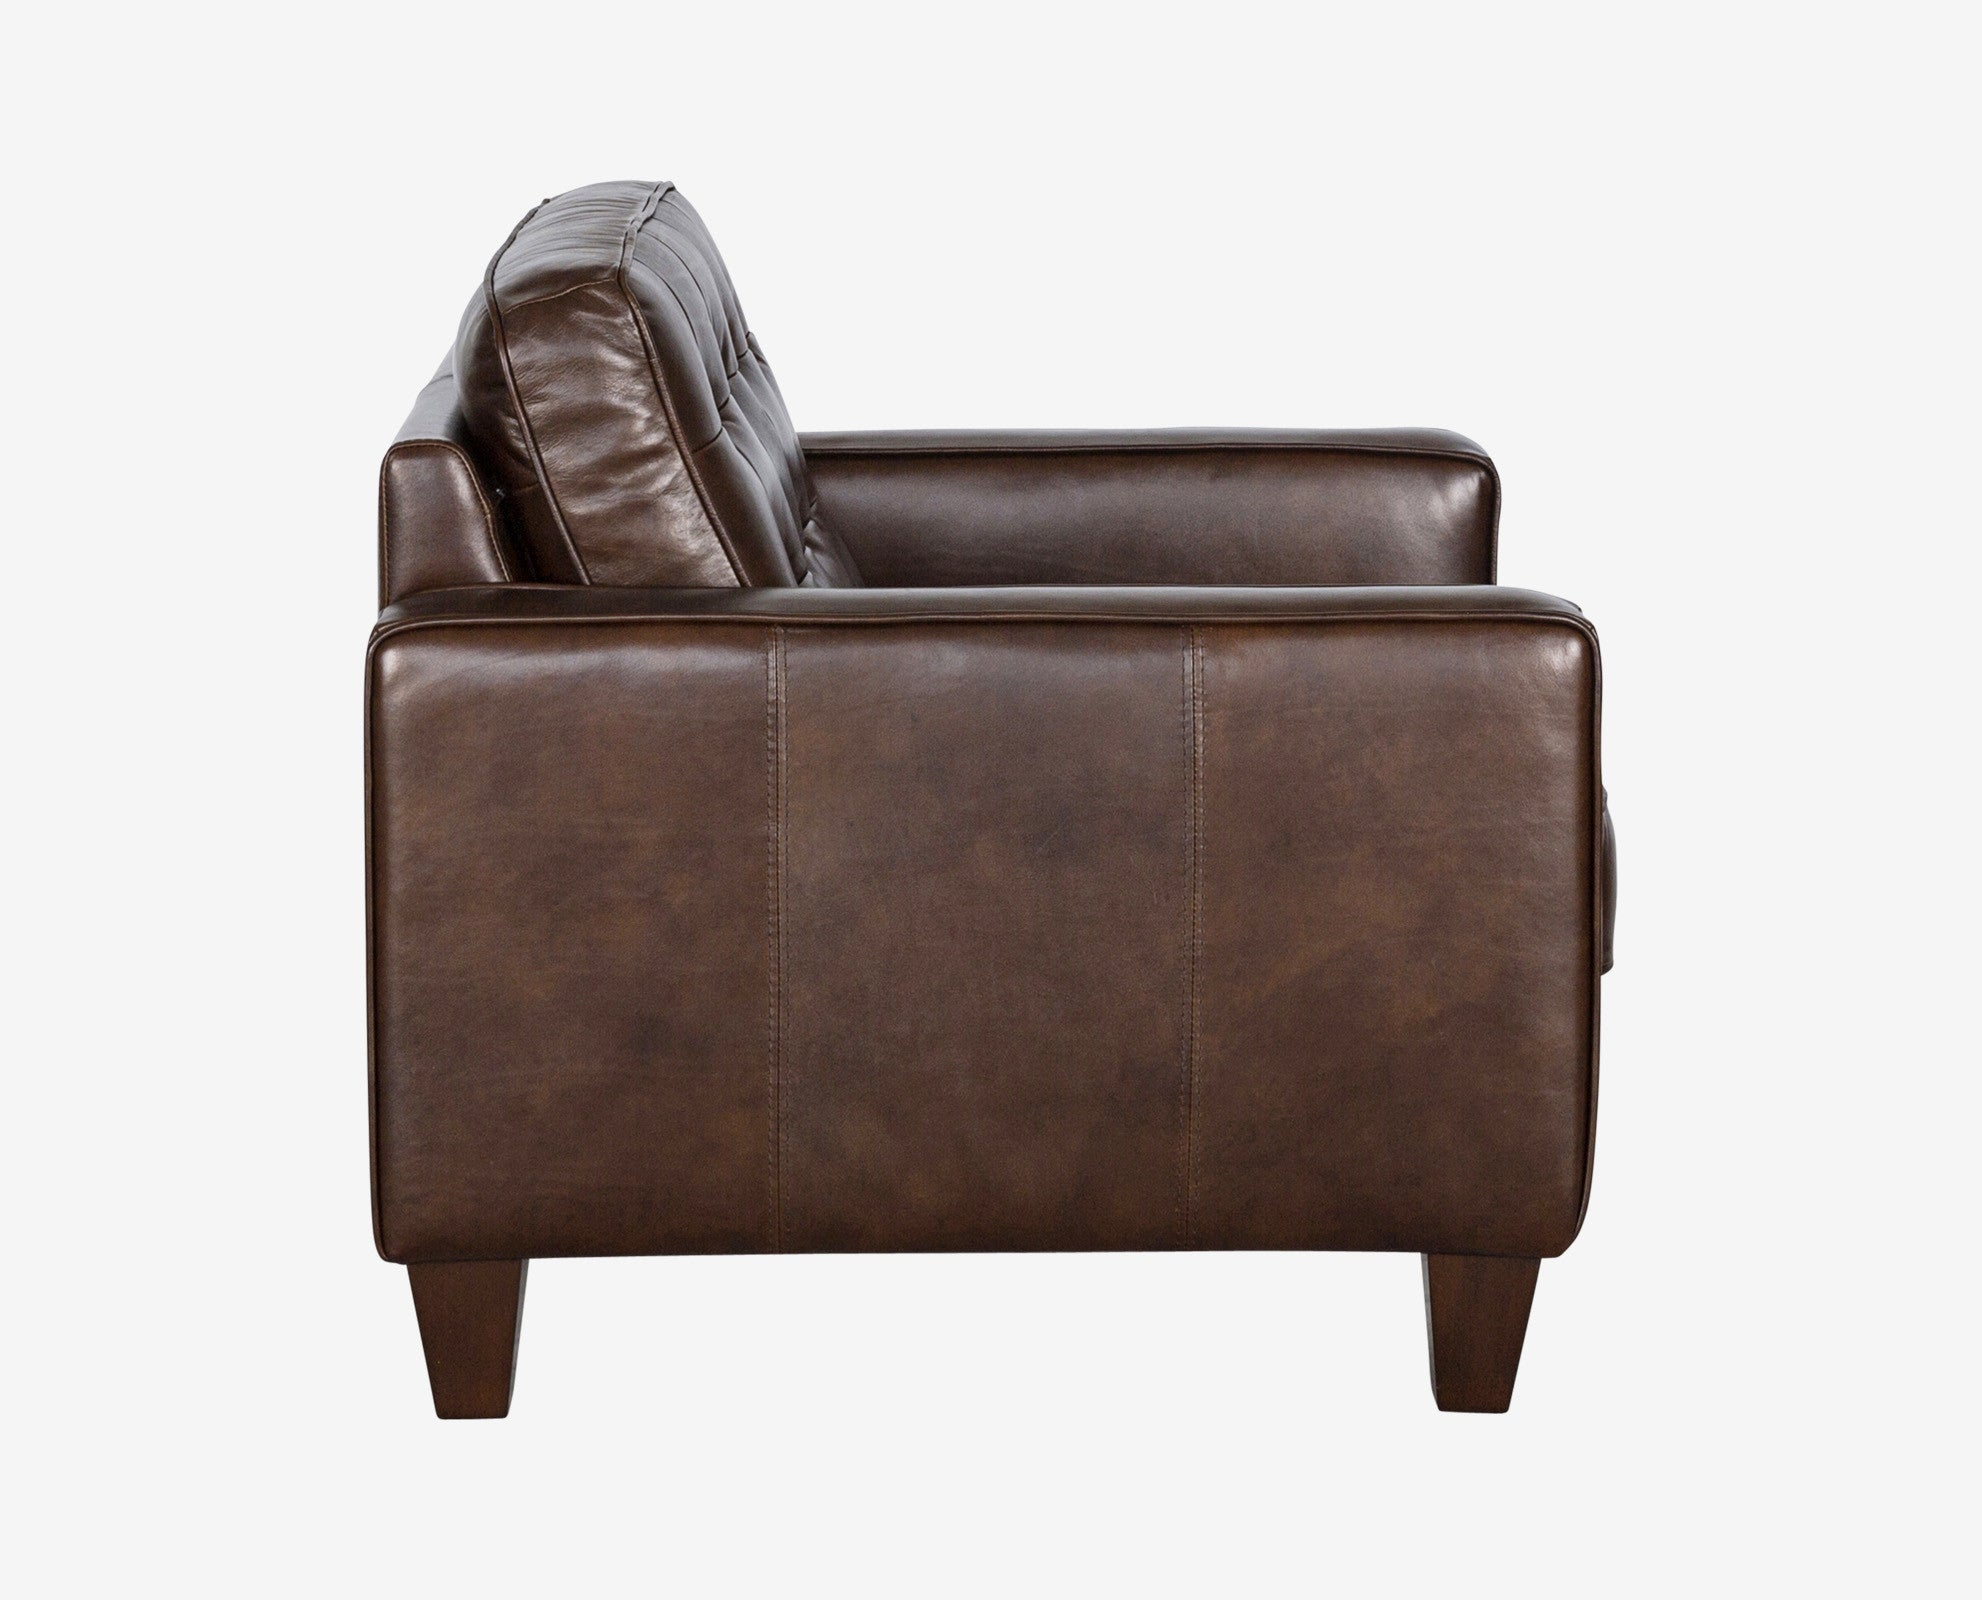 Traditional modern brown tufted leather accent chair